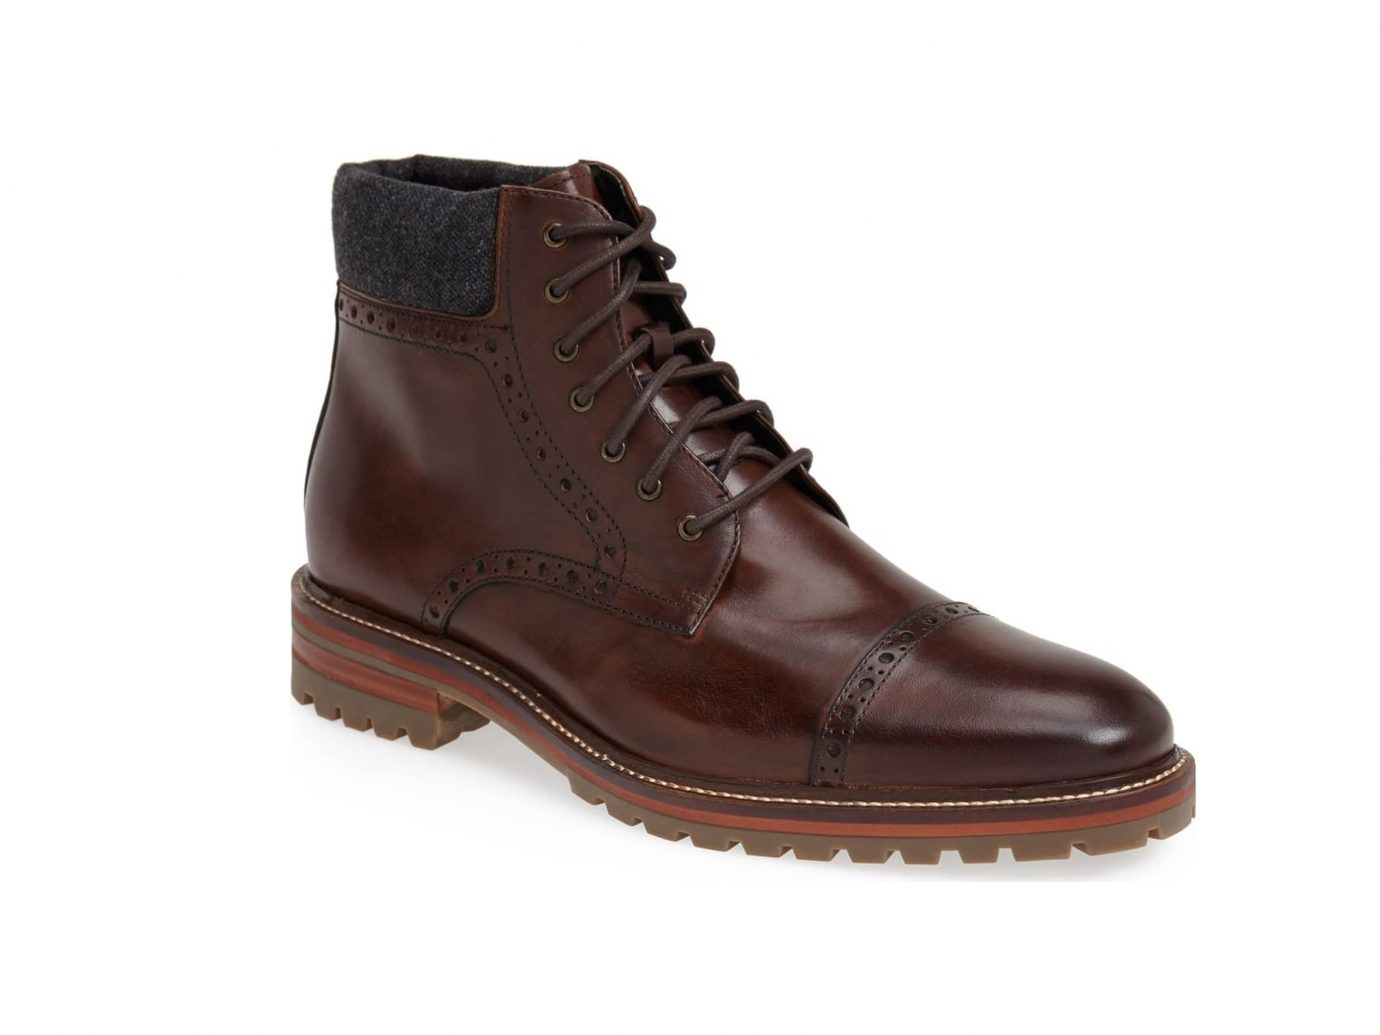 J&M 1850 'Karnes' Brogue Cap Toe Boot